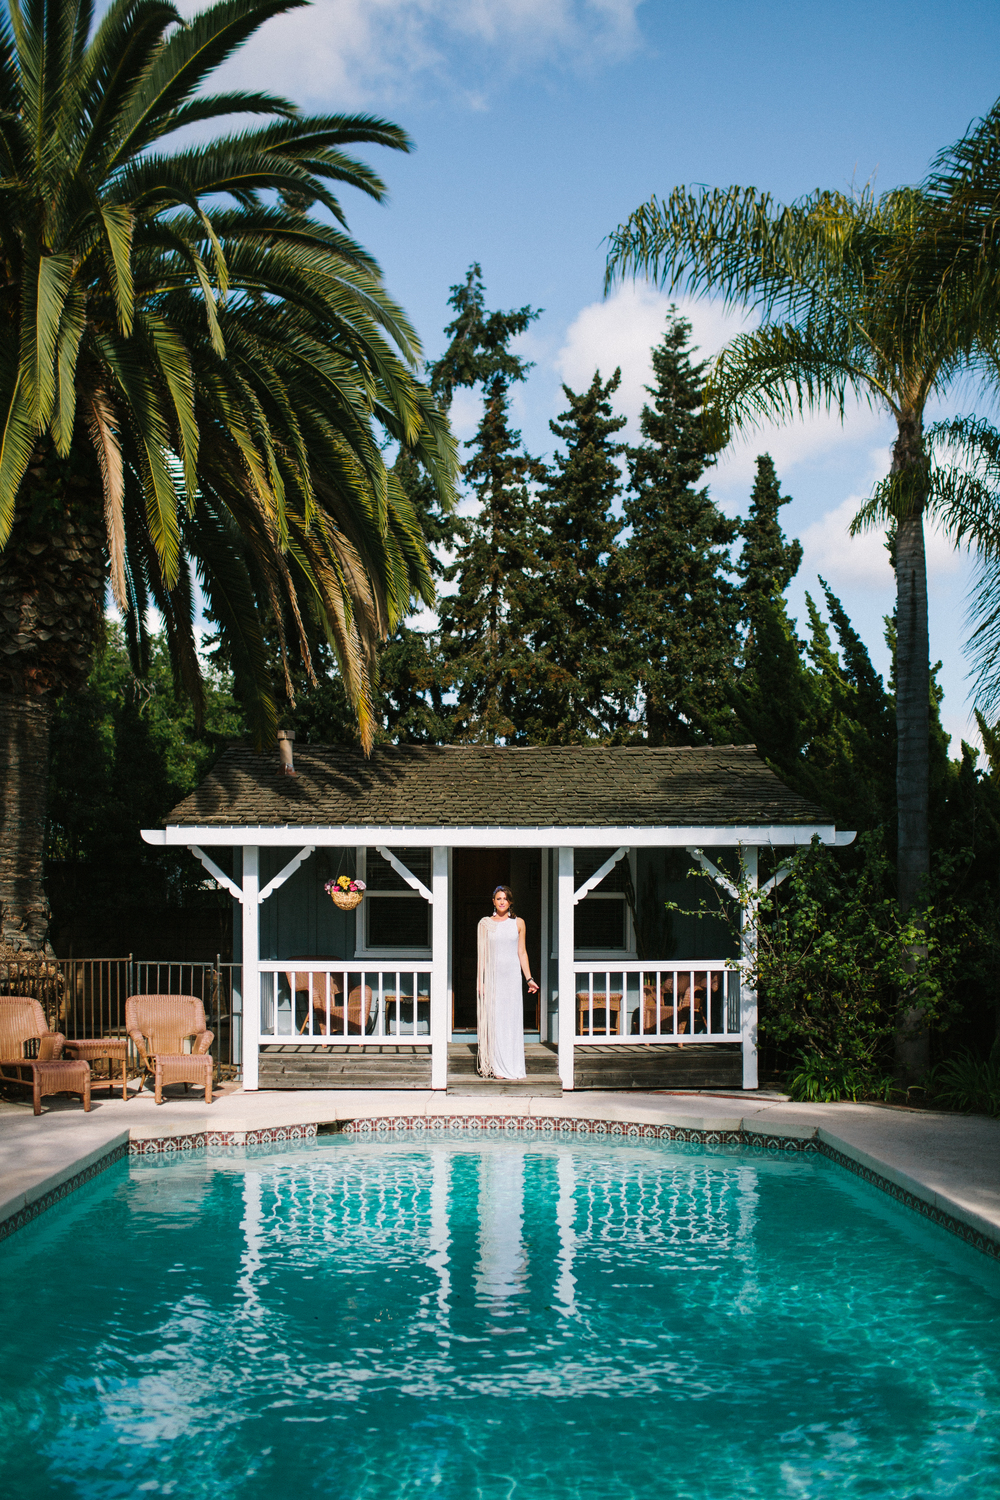 Rustic_wedding_venue_San_Diego.jpg